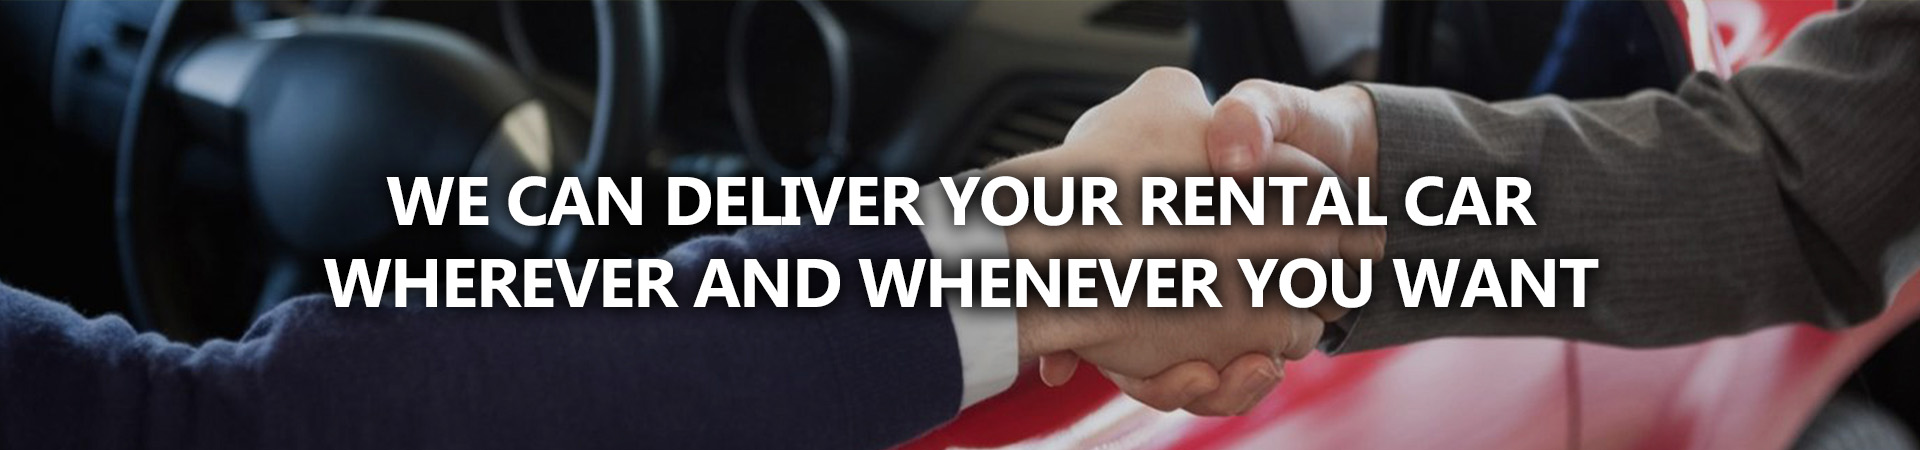 YOUR RENTAL CAR WHEREVER AND WHENEVER YOU WANT